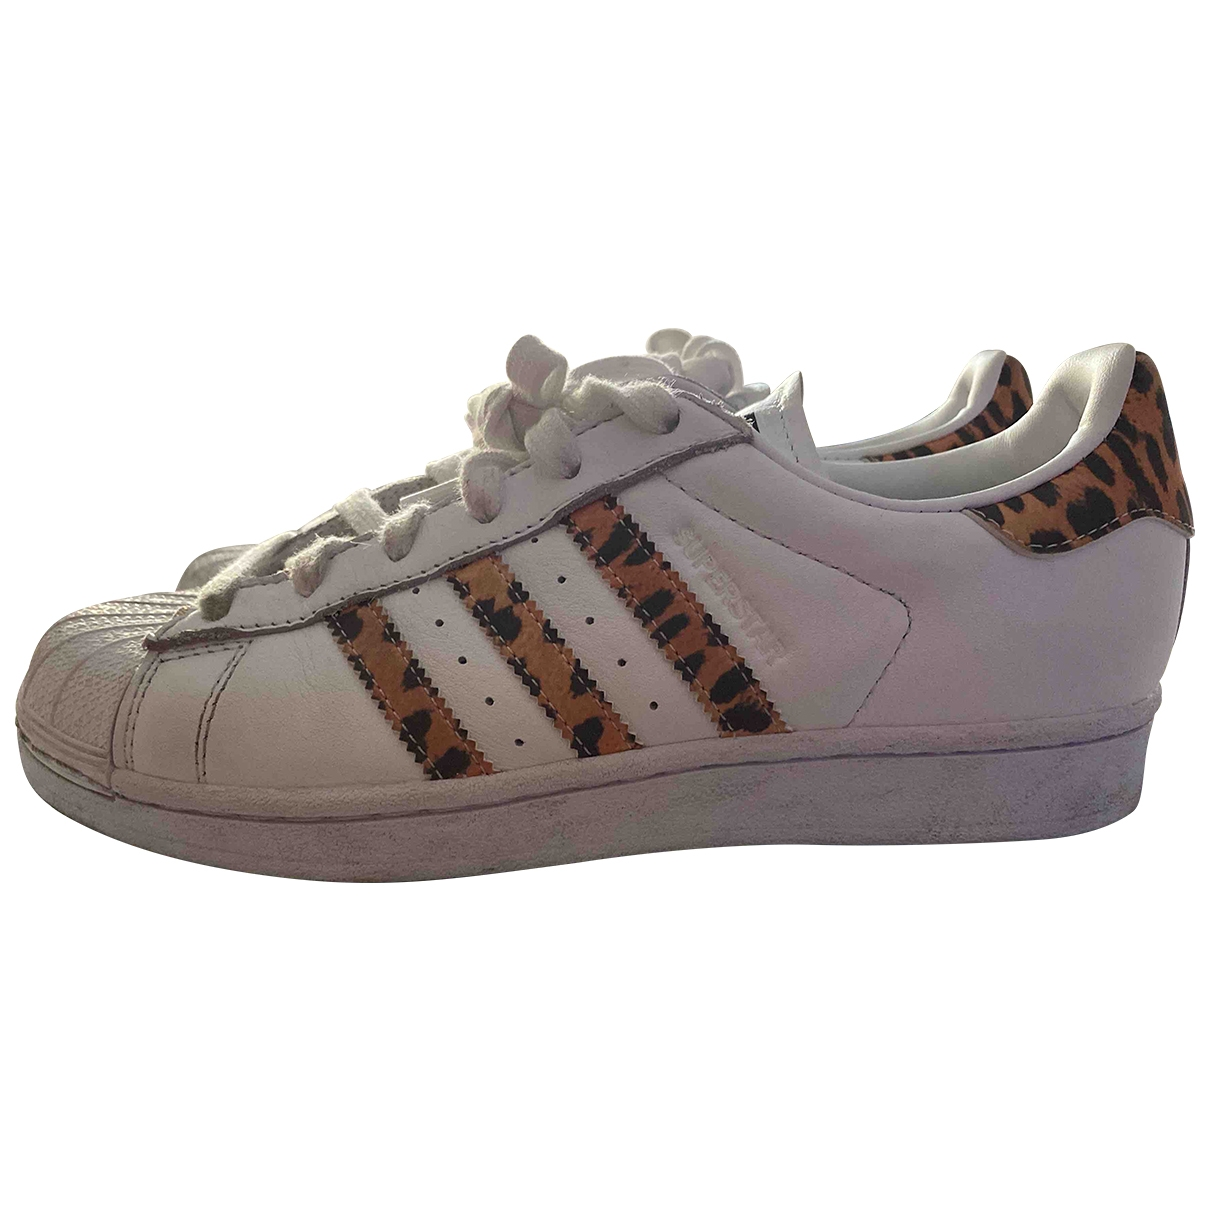 Adidas Superstar Sneakers in  Weiss Leder